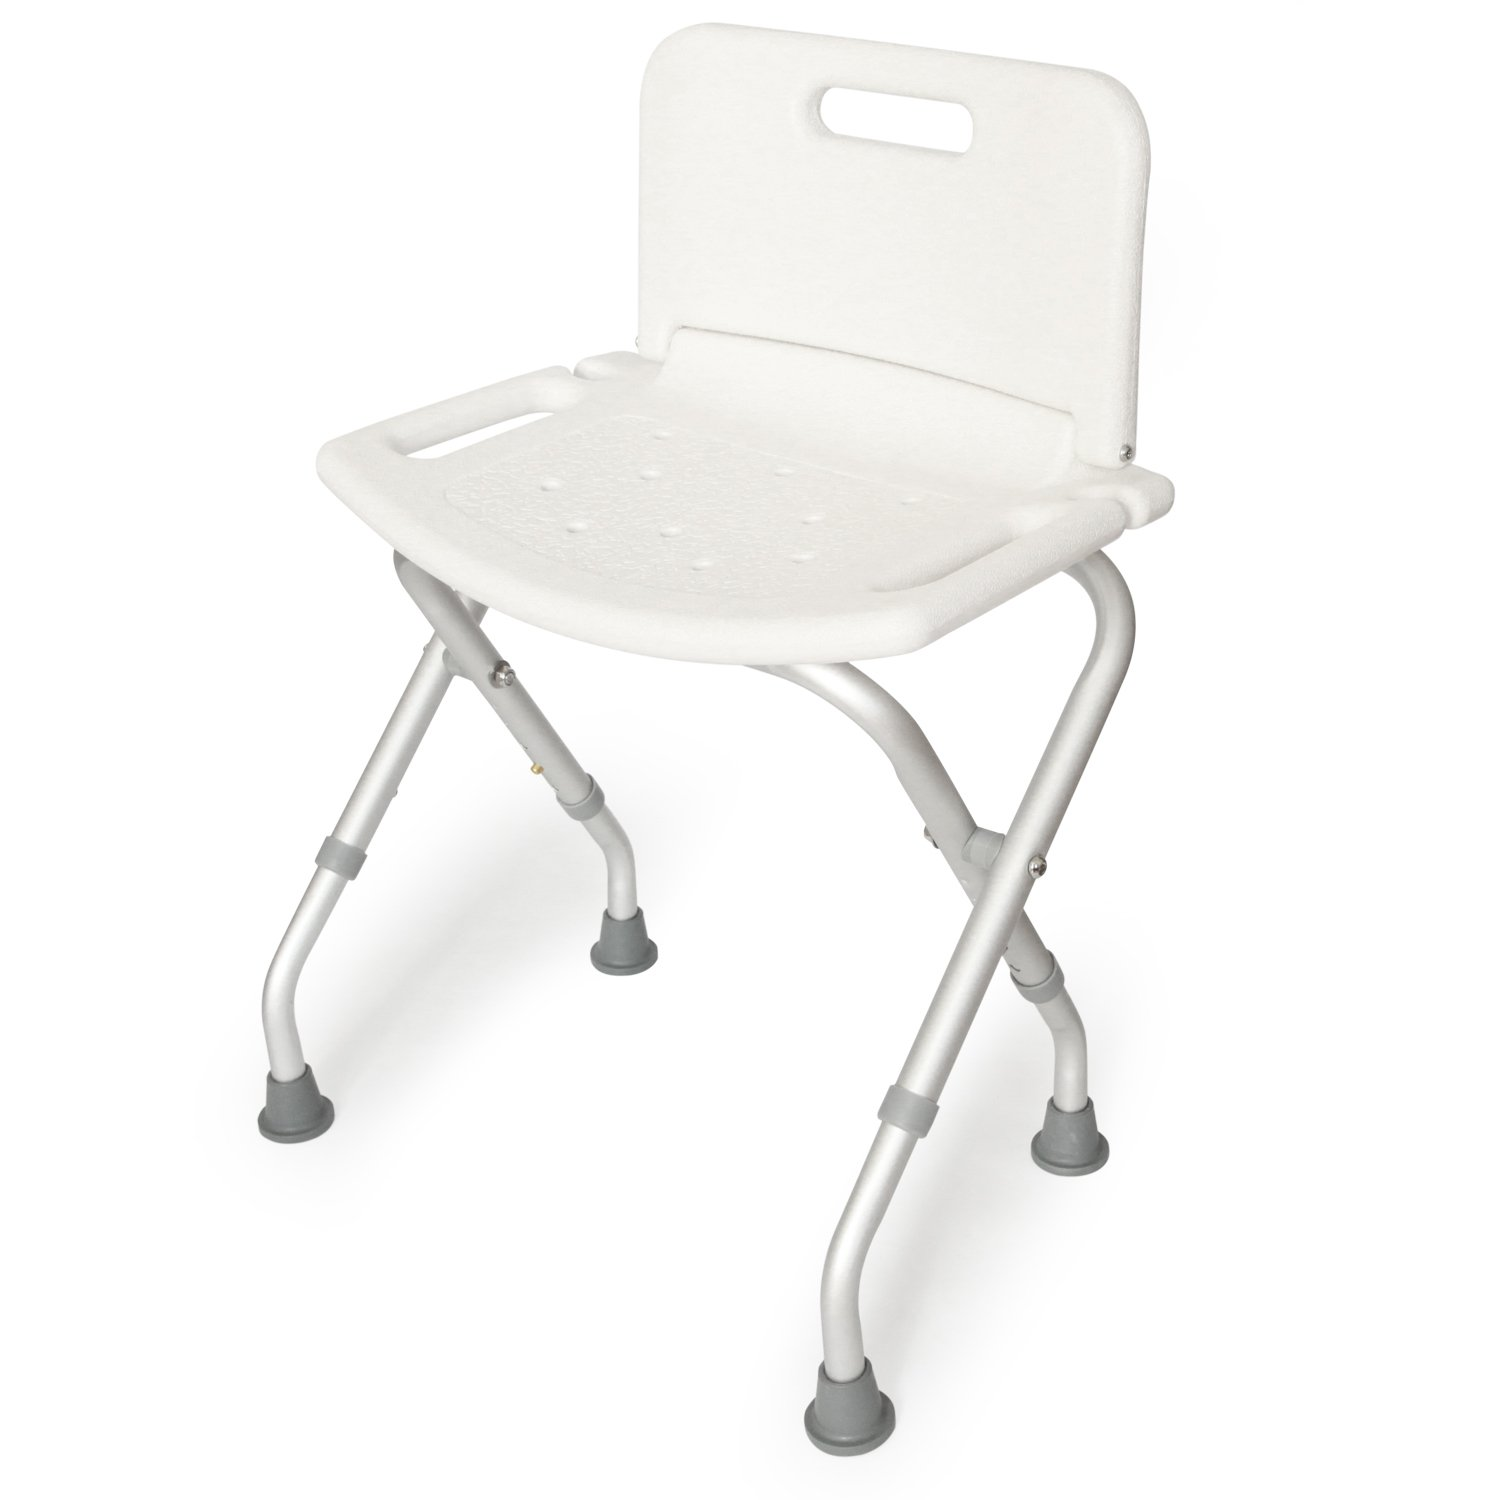 ToiletTree Products Deluxe Folding Shower Seat with Back, Adjustable Legs, and Anti-Slip Rubber Feet, 300lb Capacity